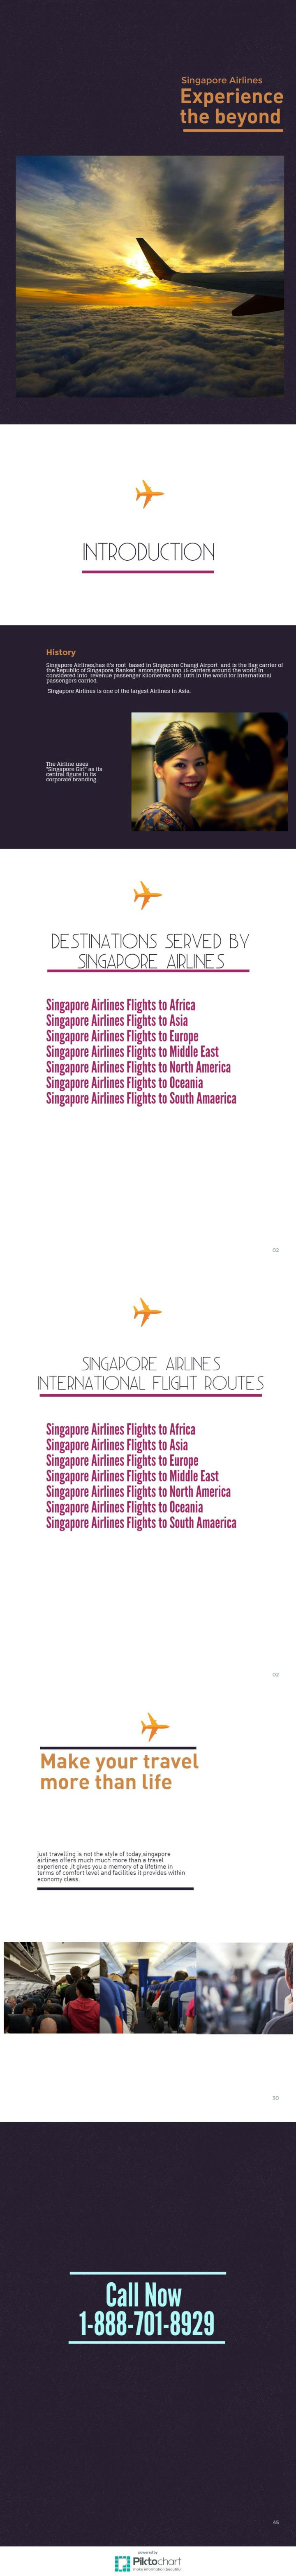 Singapore airlines booking phone number 1 888 701 8929 7435722